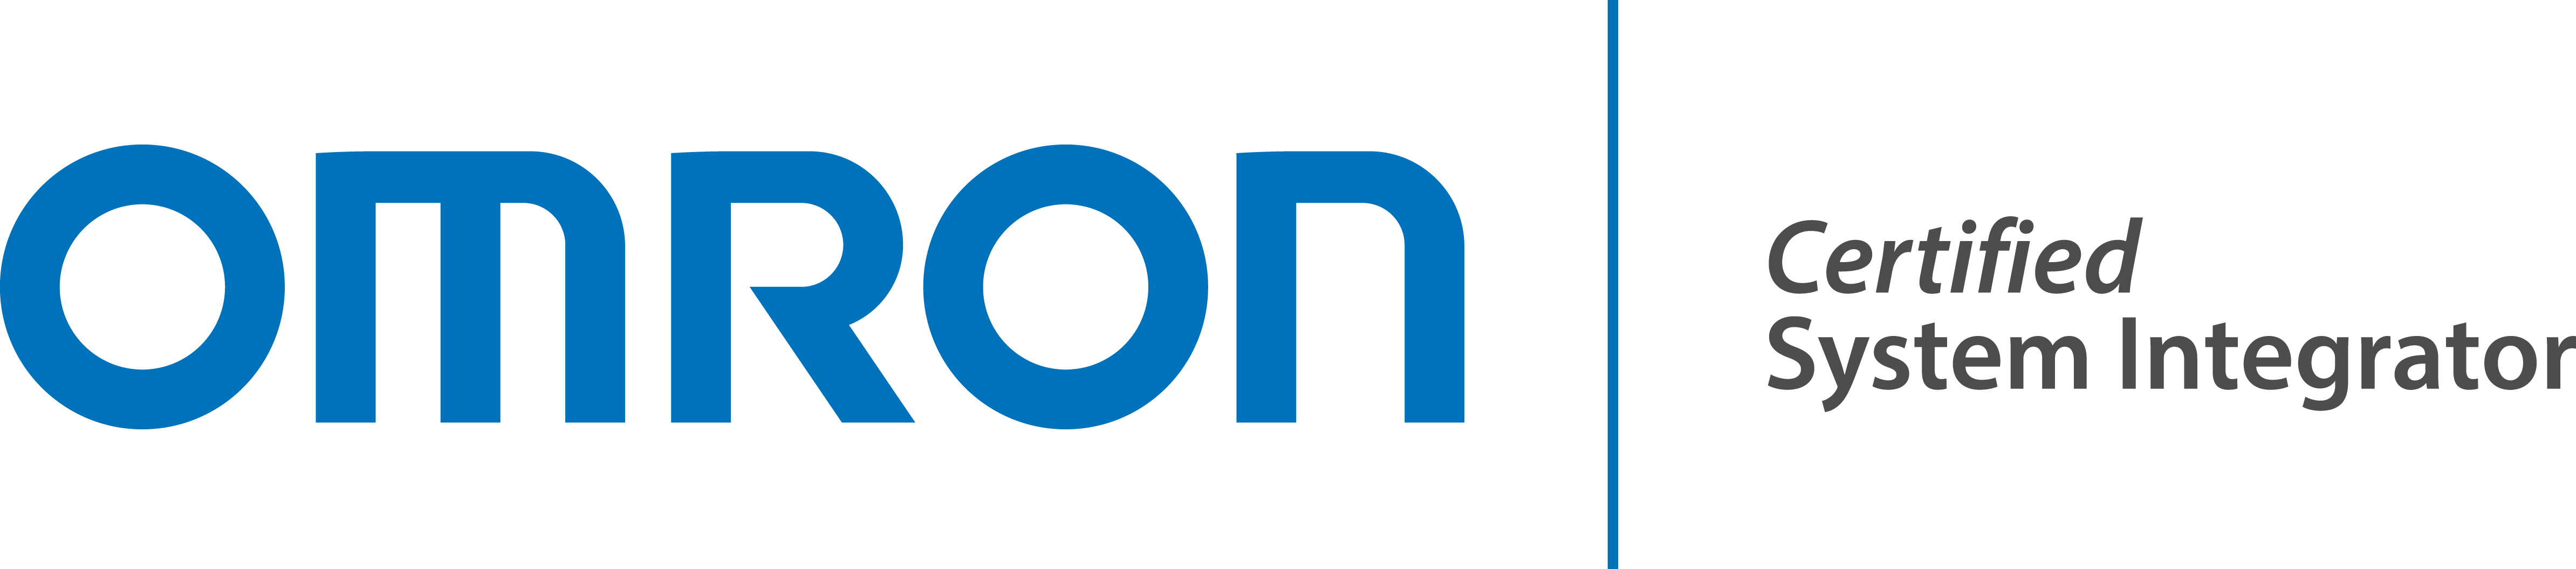 Omron Certified System Integrator